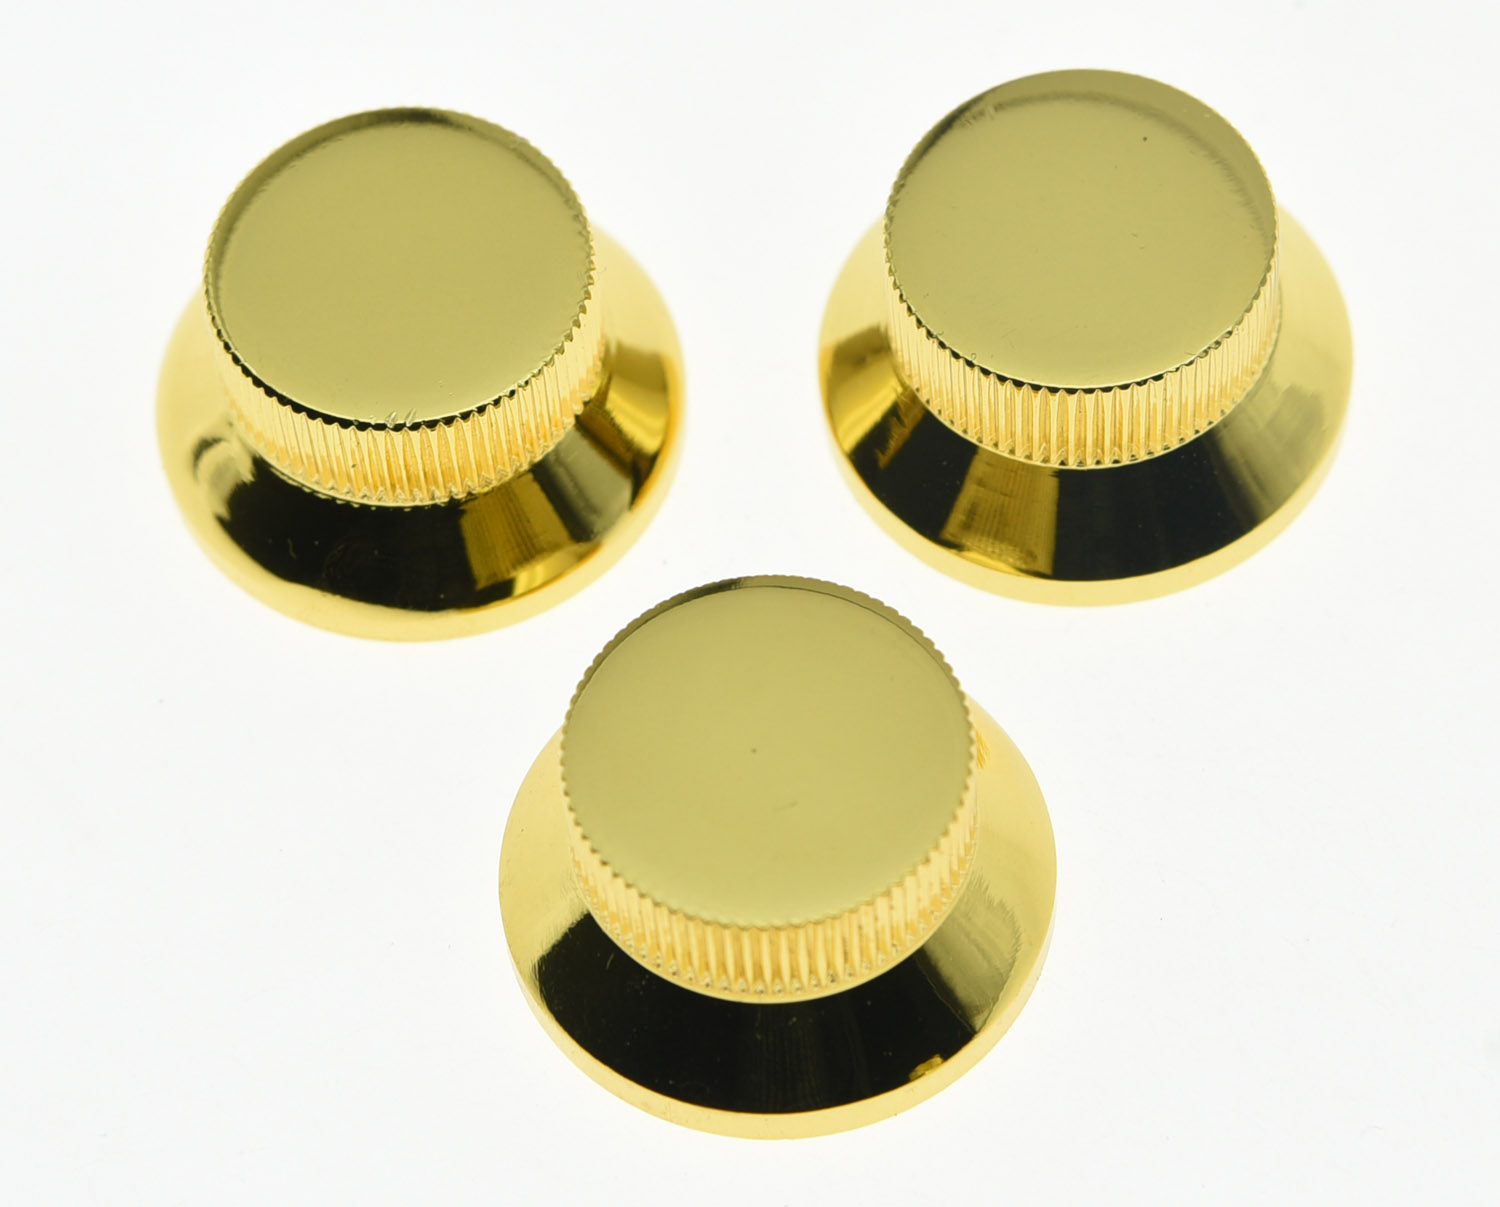 KAISH 3pcs Gold Metal ST Strat Knobs Top Hat Bell Guitar Bass Knob For 5.8mm Pots